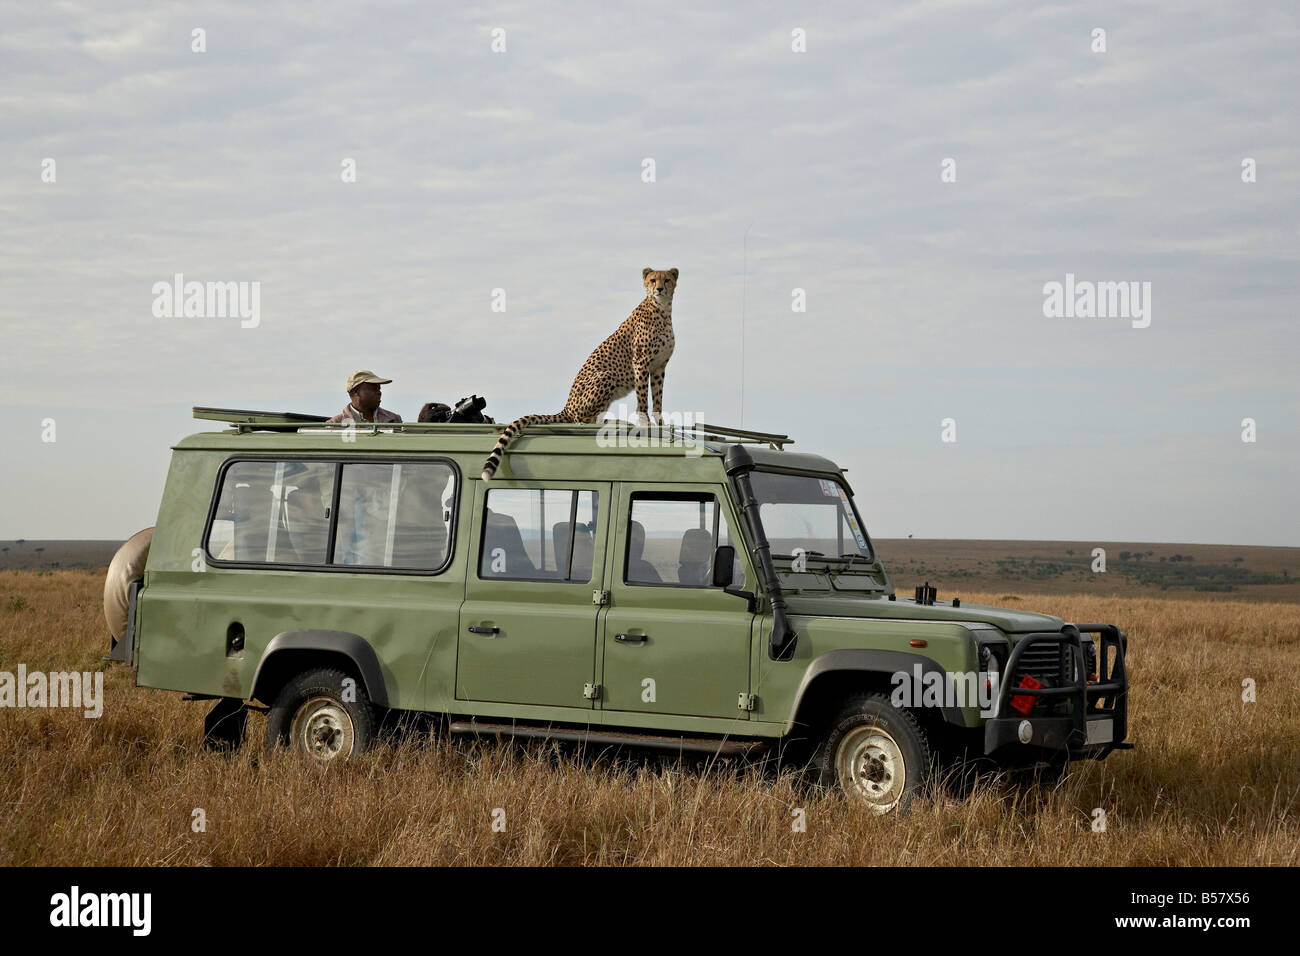 Land Rover Vehicle Stock Photos Land Rover Vehicle Stock Images